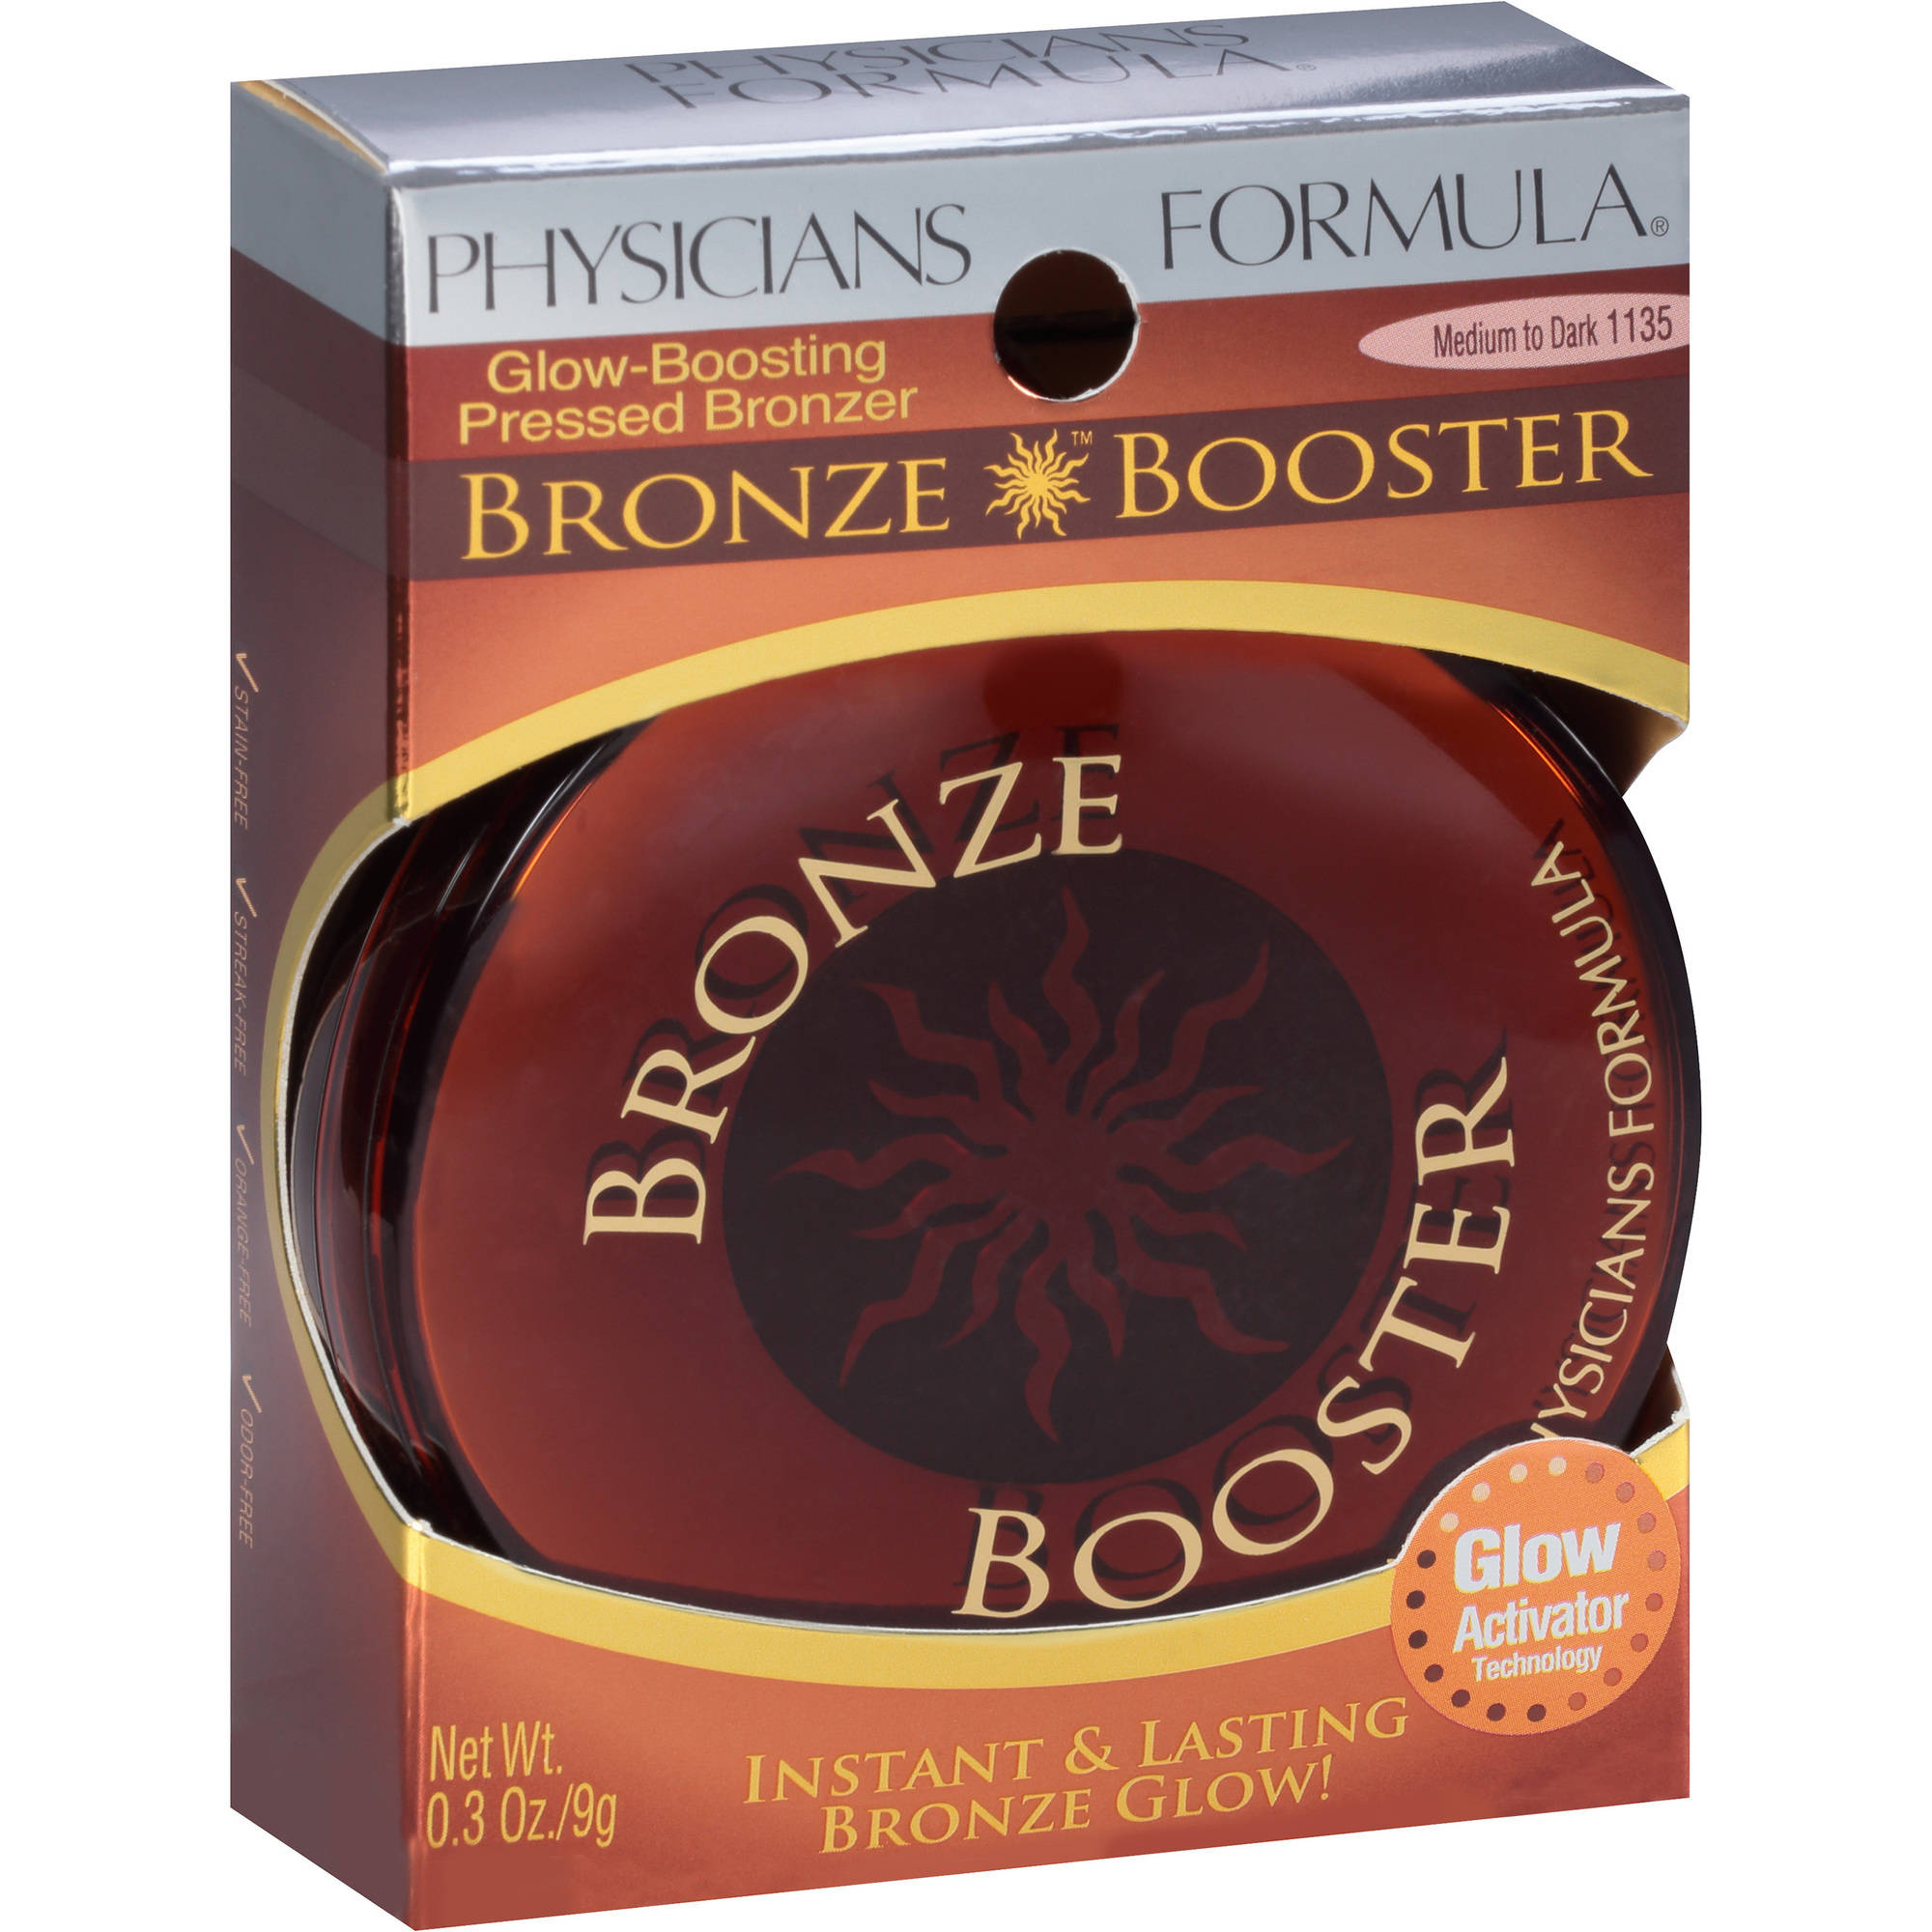 Physicians Formula Bronze Booster Glow-Boosting Pressed Bronzer, 1135 Medium to Dark, 0.3 oz